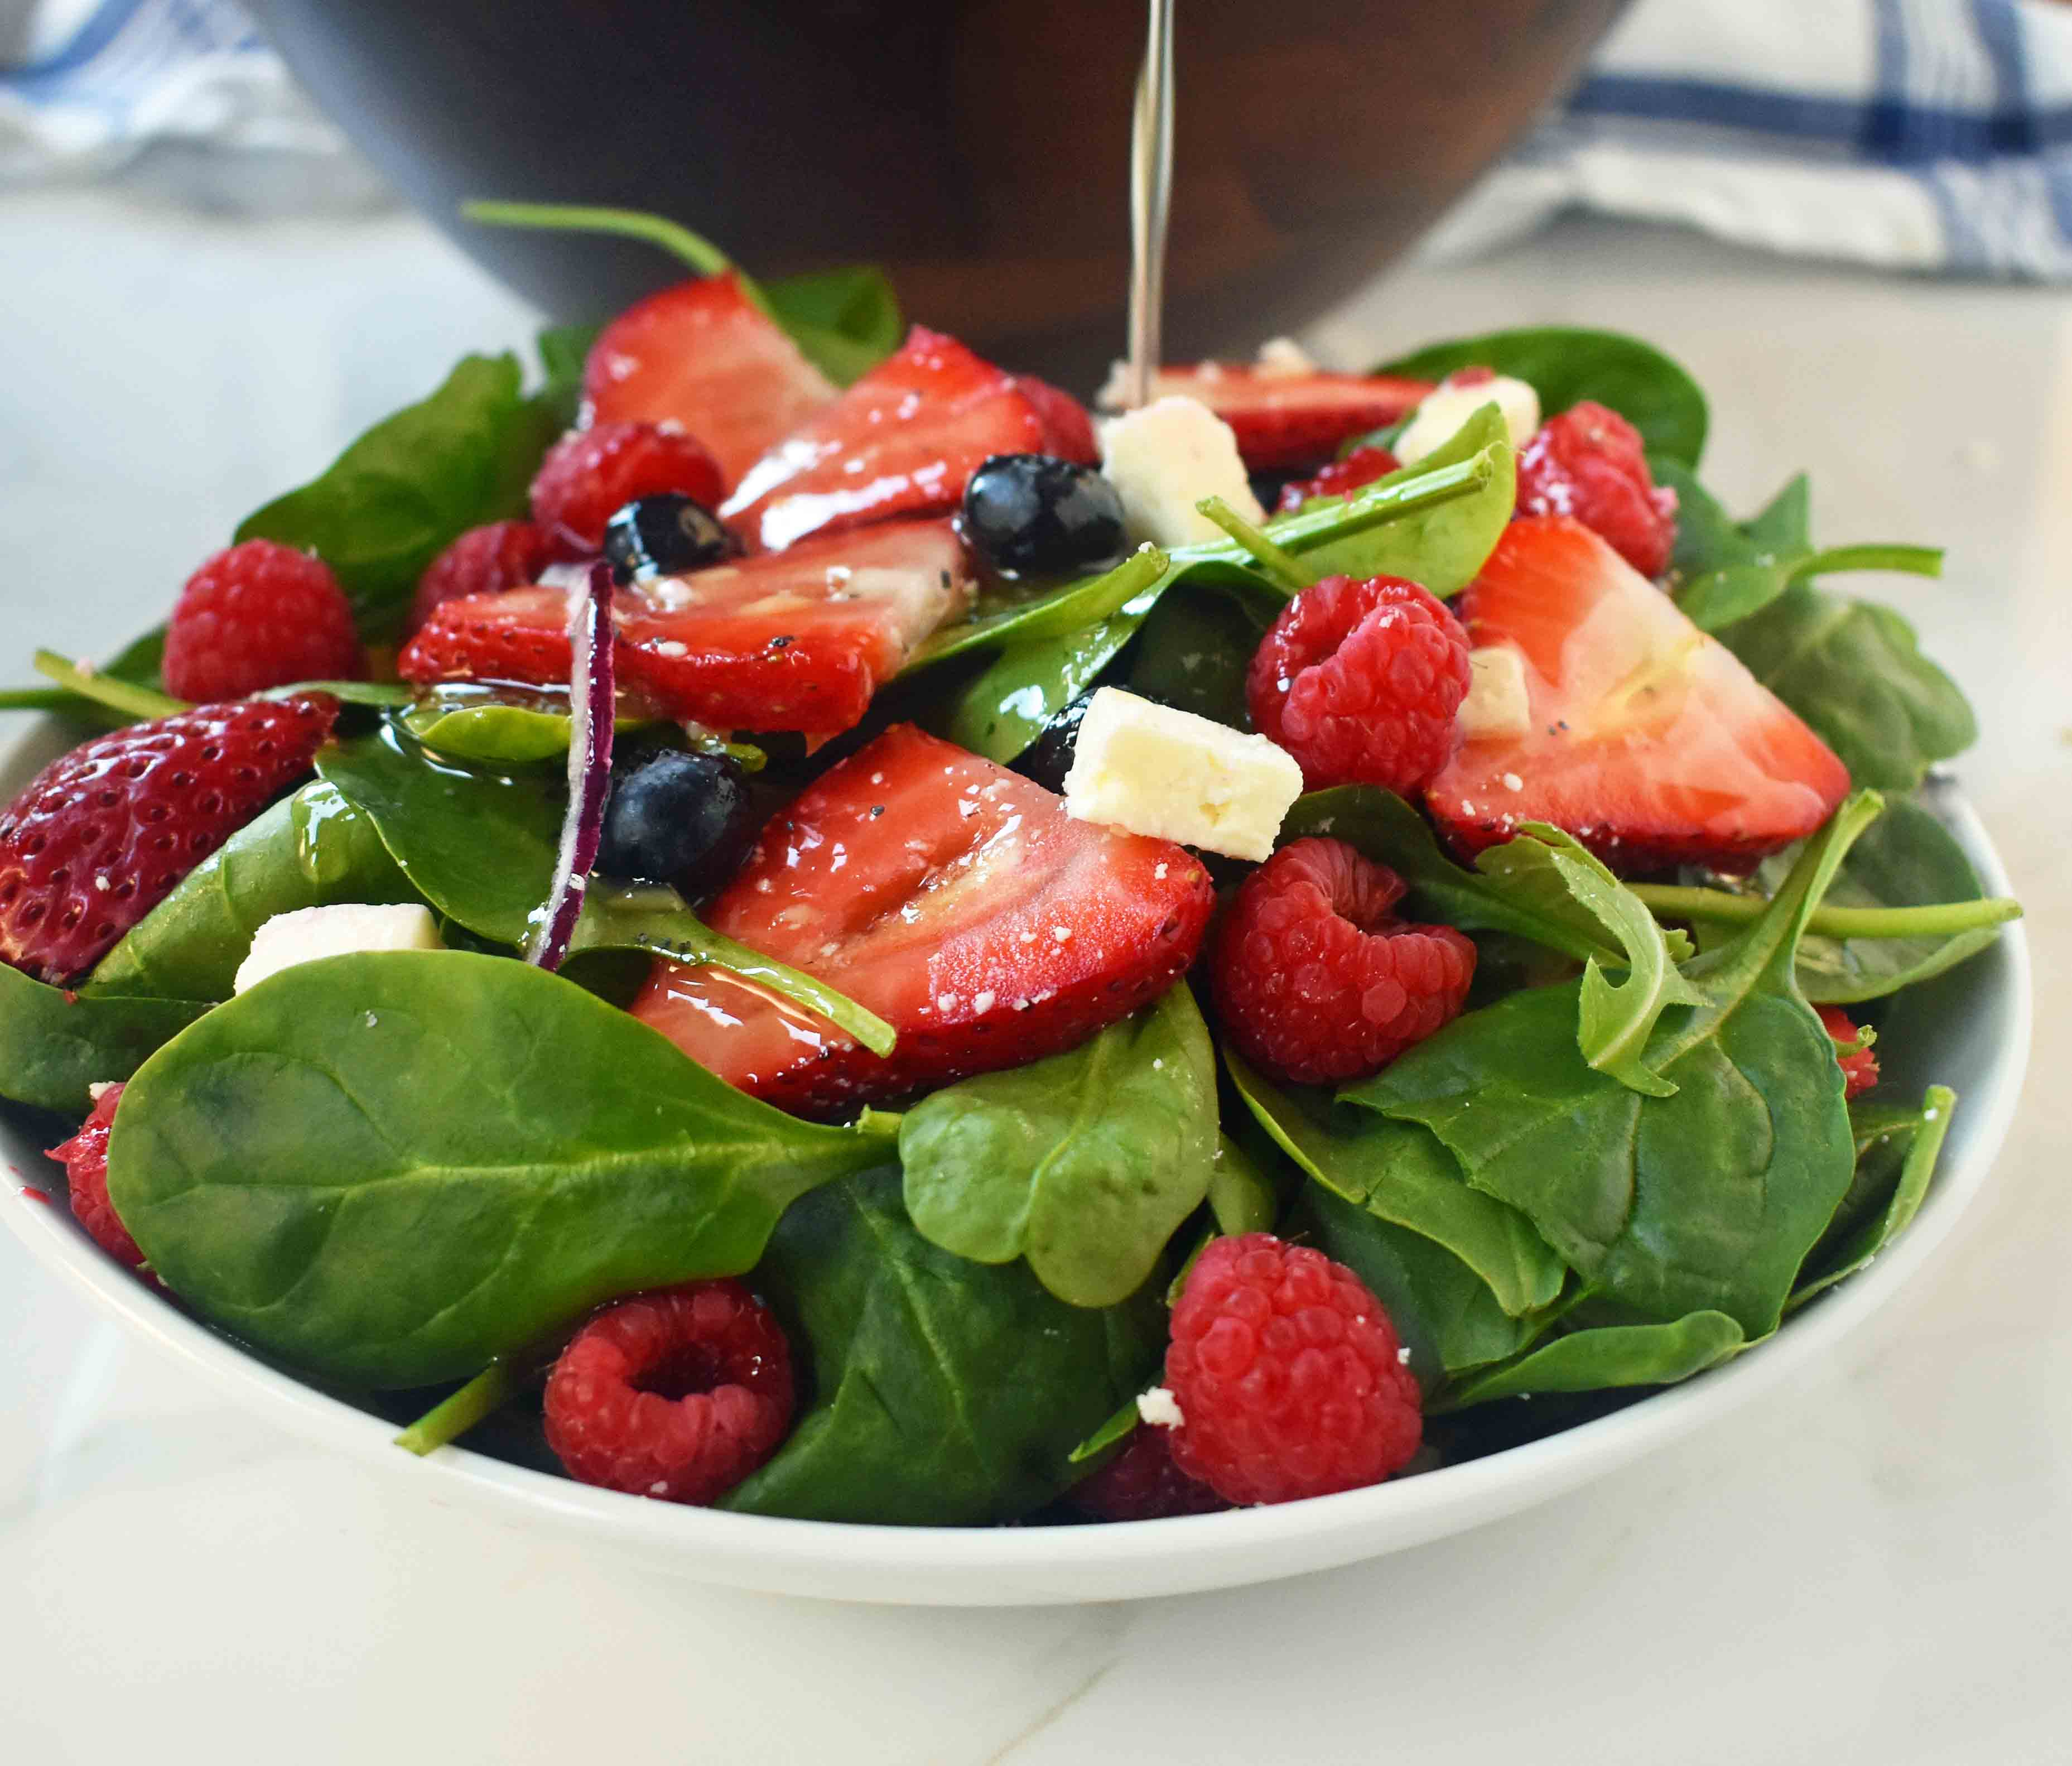 Spinach Berry Salad with Sweet Poppyseed Dressing. Fresh Spinach Salad with Berries, Feta Cheese, and Poppy Seed Dressing. www.modernhoney.com